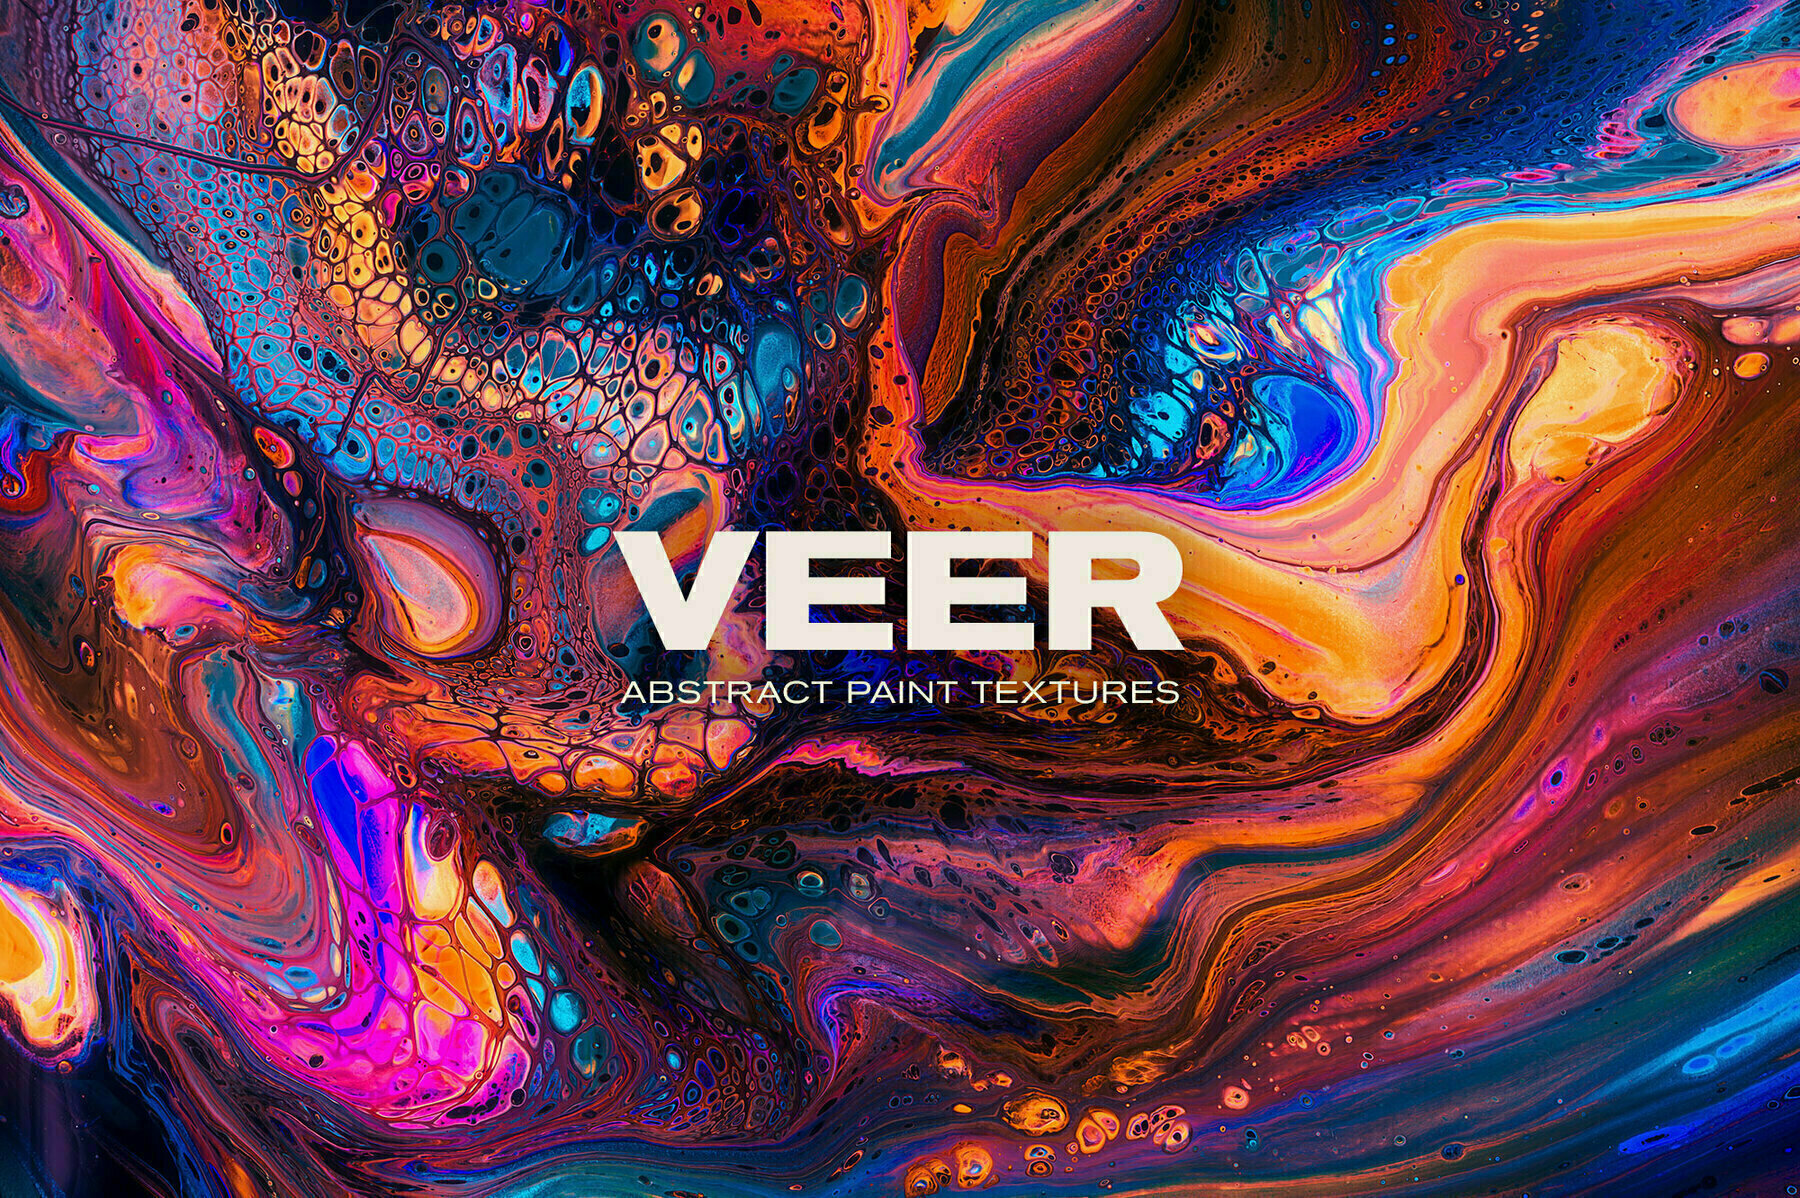 Veer     Abstract Paint Textures